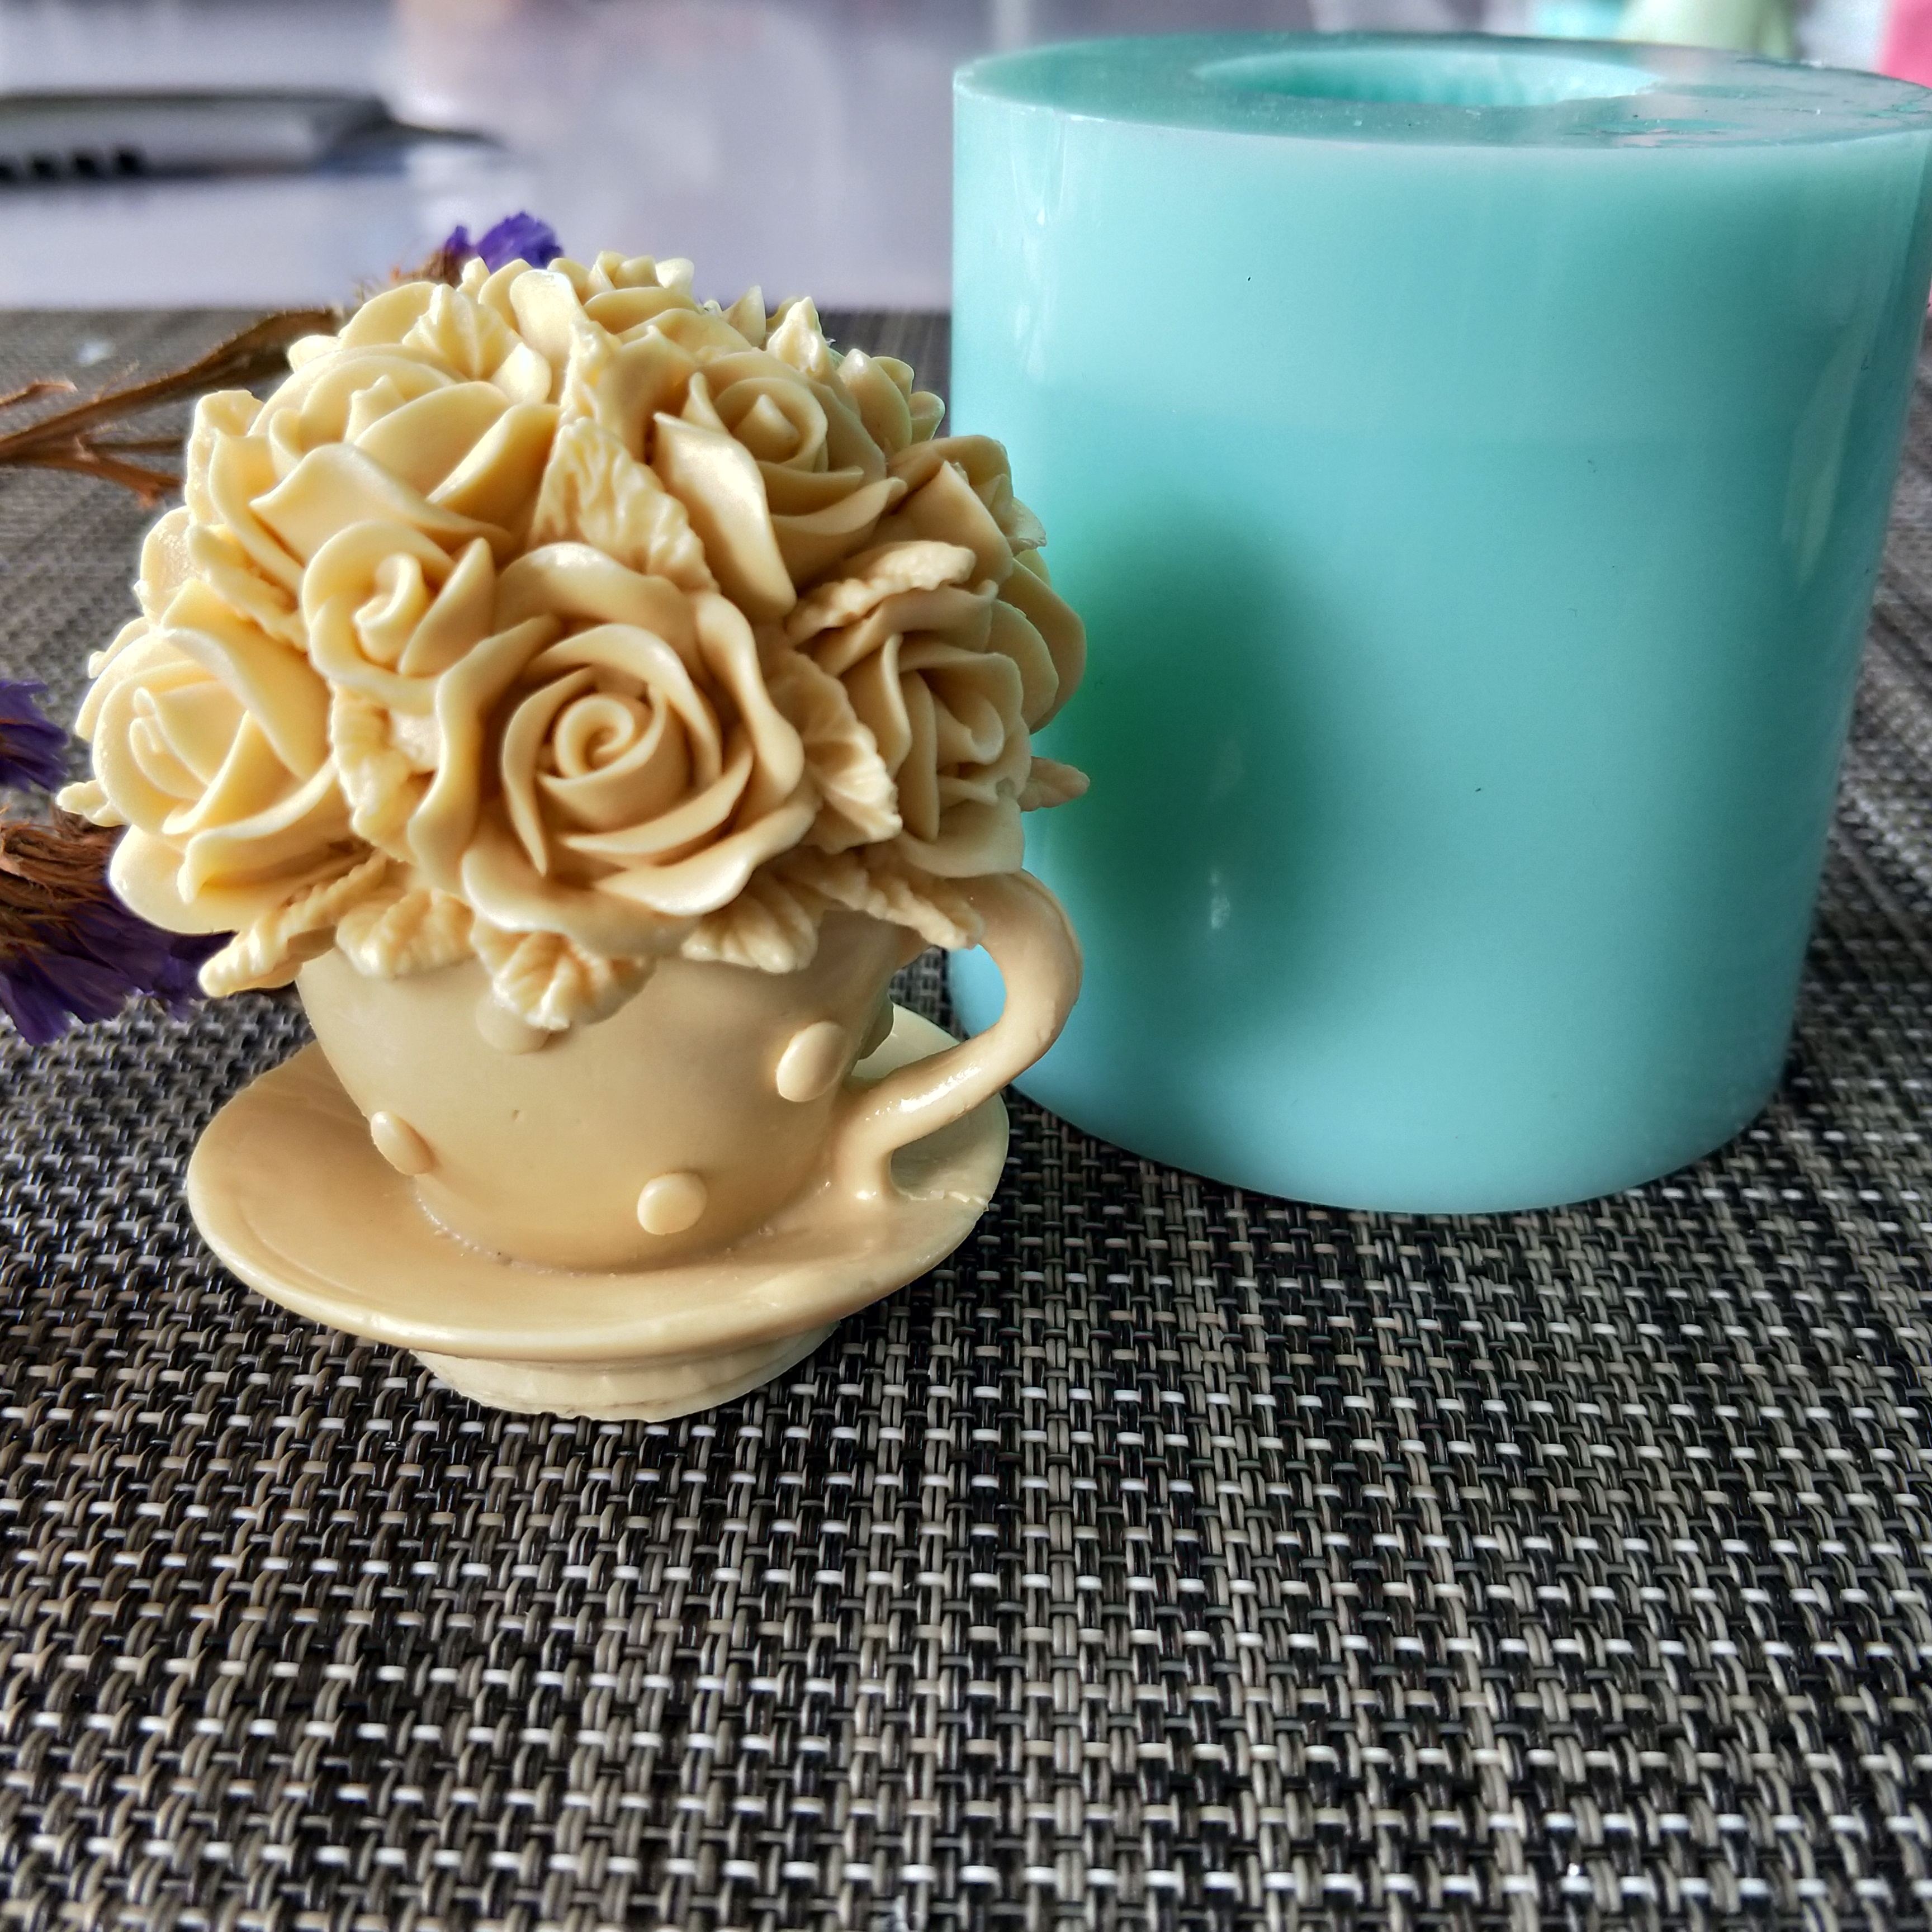 HC0120 PRZY Flower rose cup silicone mold soap mould Flower handmade soap making molds candle silicone mold resin clay mold